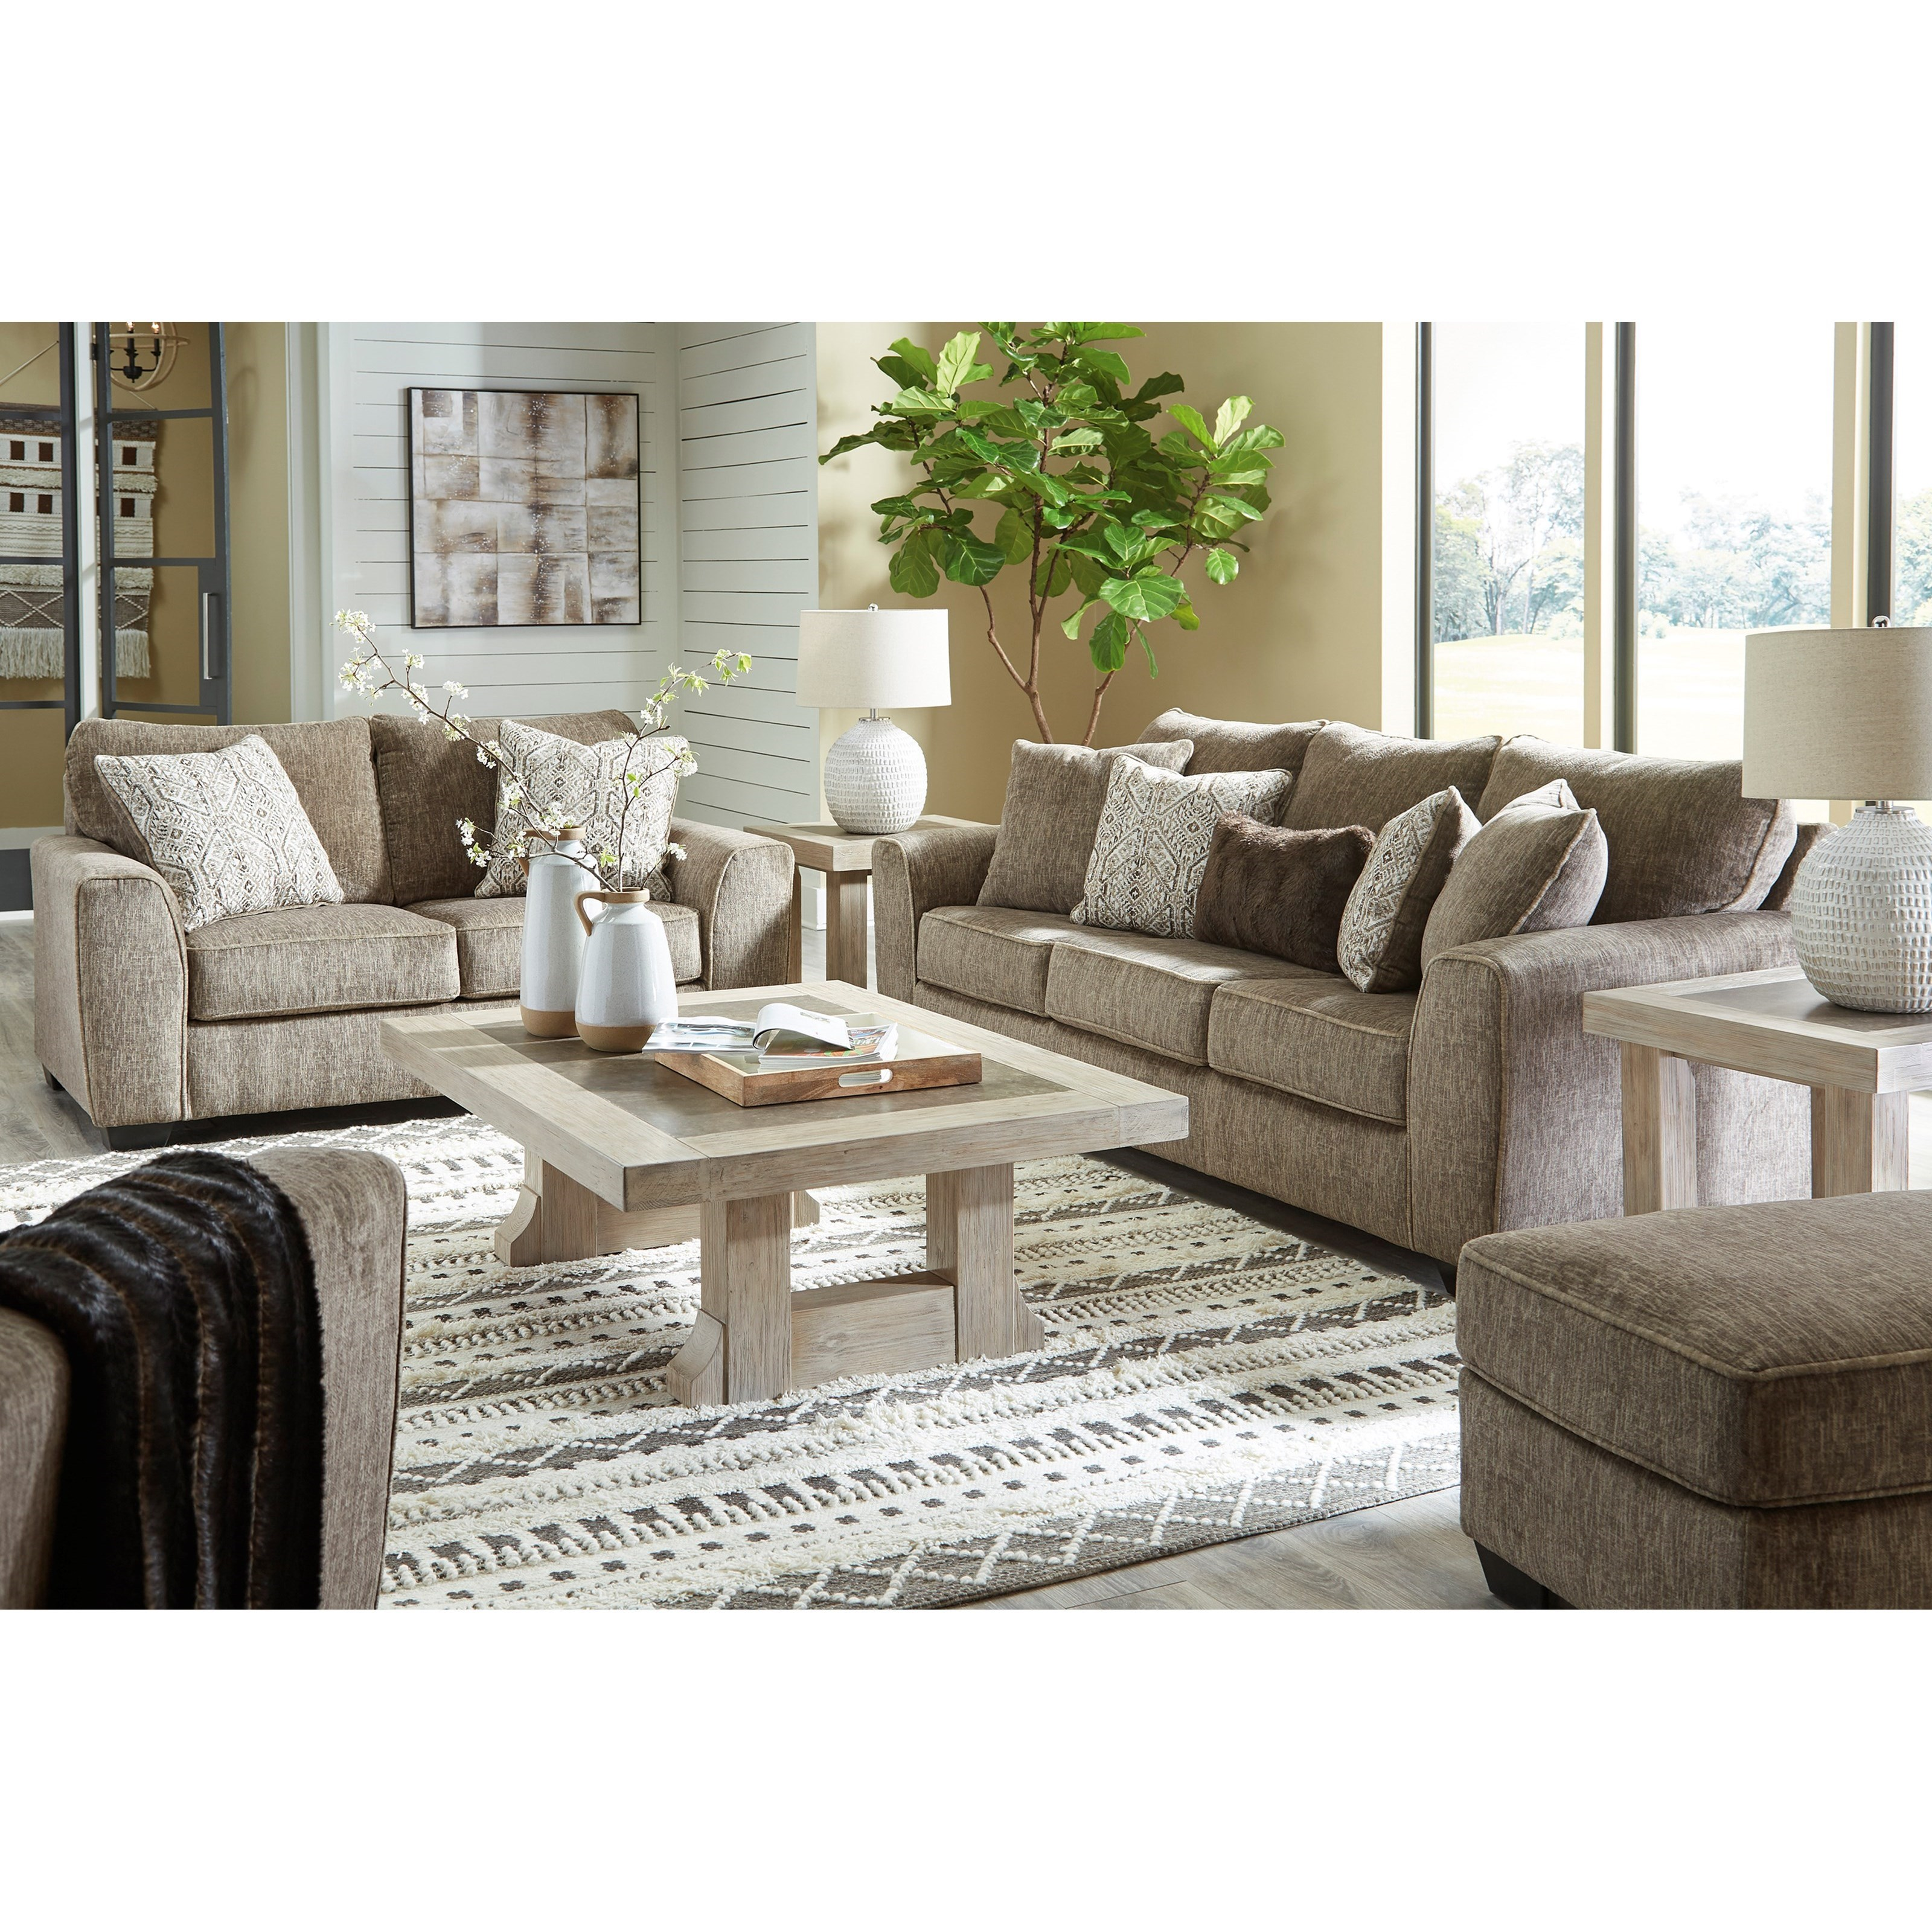 Olin Living Room Group by Benchcraft at Suburban Furniture